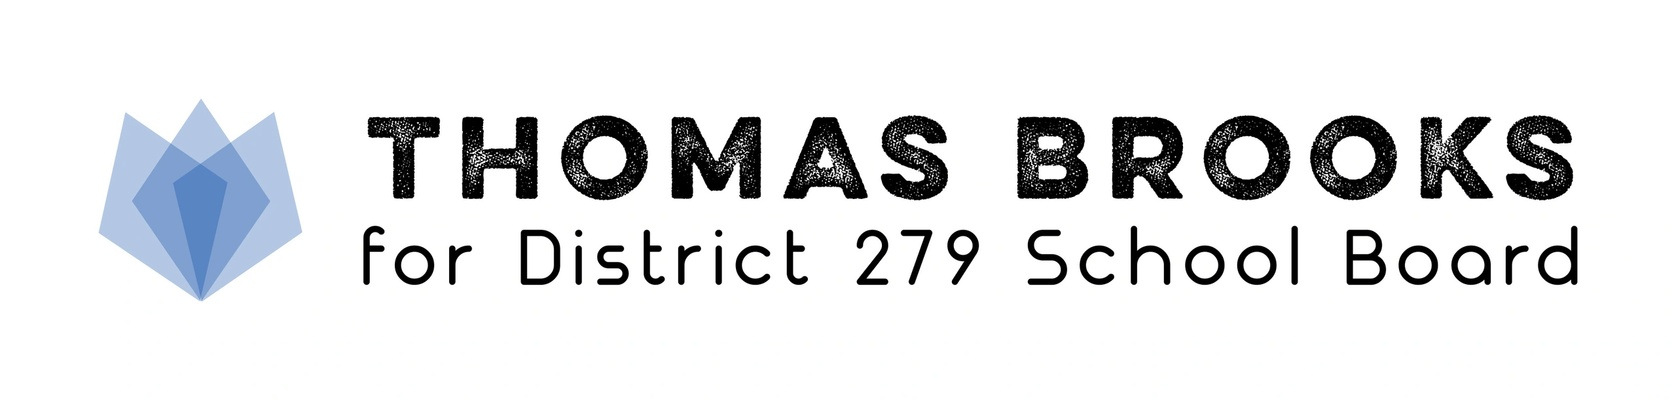 Thomas brooks OSSEO AREA SCHOOL BOARD - DISTRICT 279